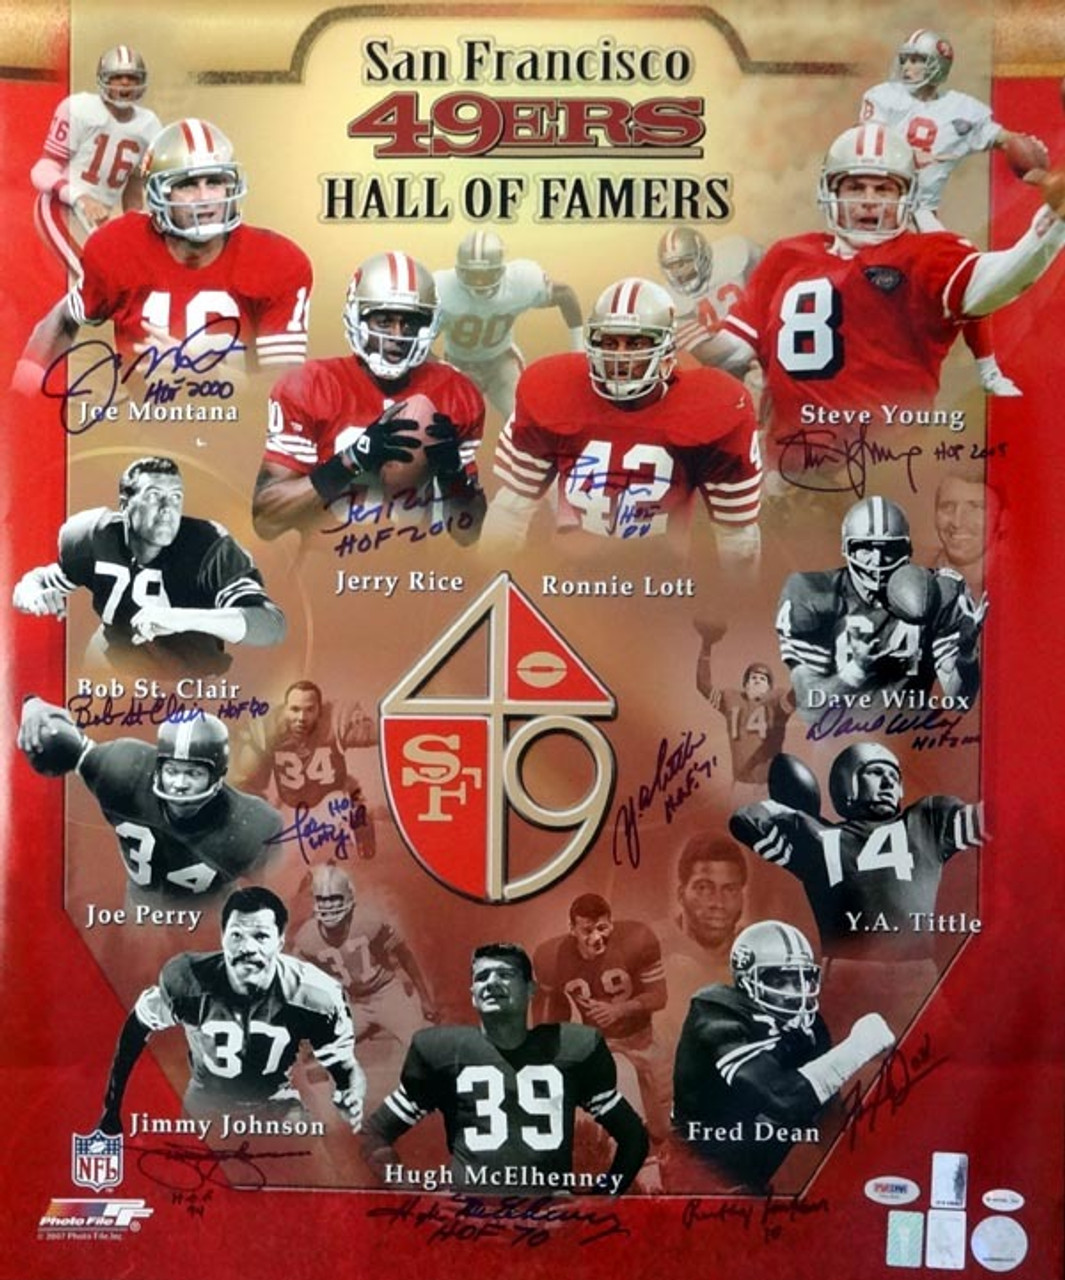 c87550f28f3 San Francisco 49ers Hall of Famers Autographed 20x24 Photo